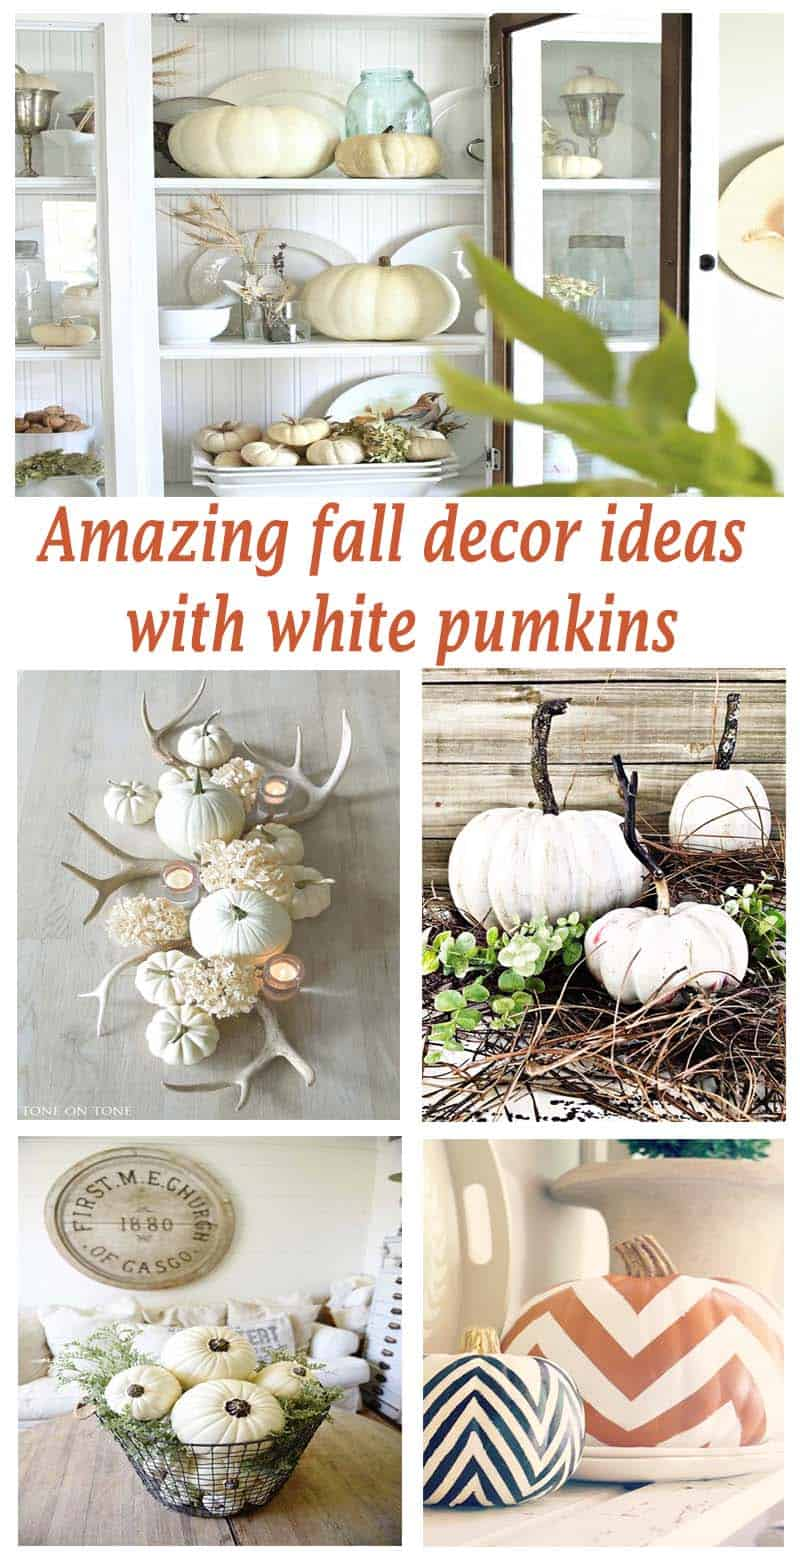 fall-decorating-ideas-white-pumpkins-000-1-kindesign